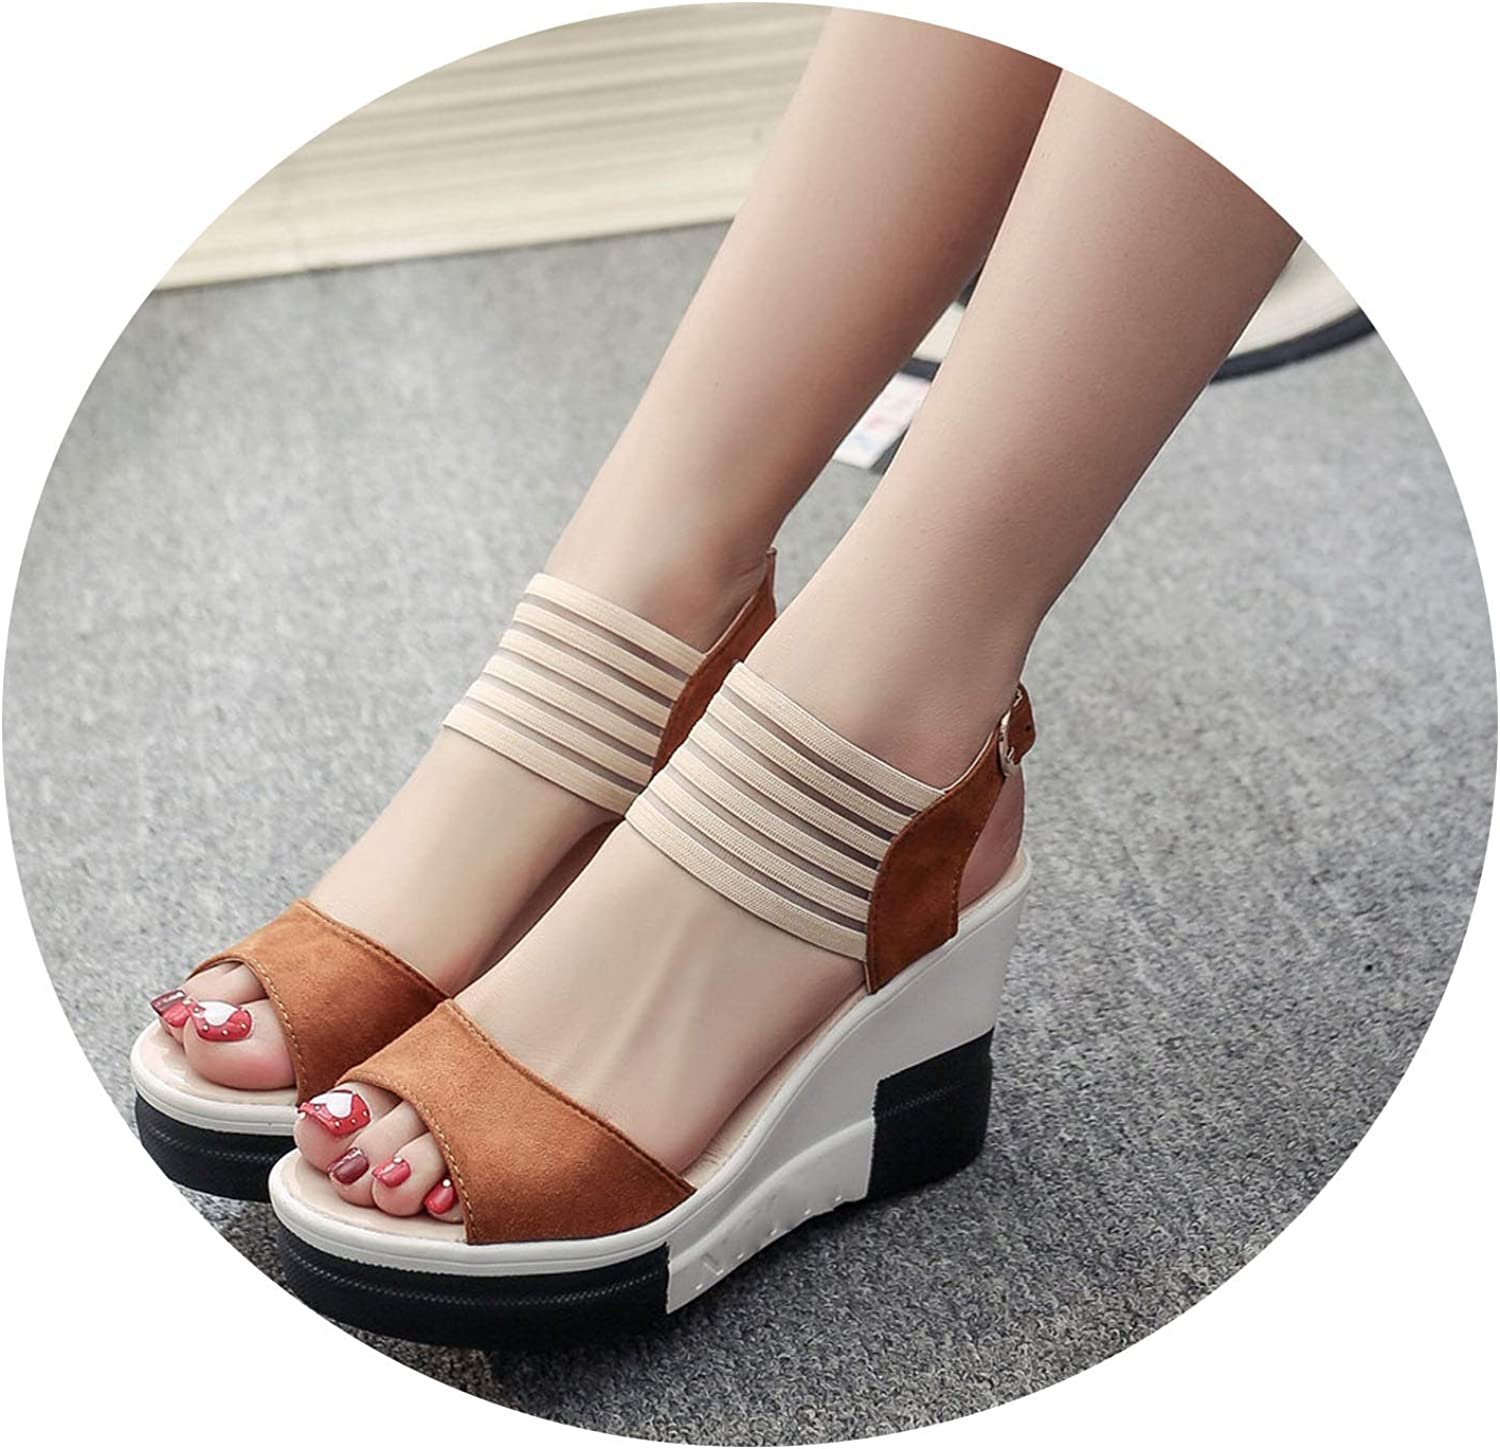 Zombie Jessica Wedge Women shoes Casual Belt Buckle High Heel shoes Fish Mouth Sandals Luxury Sandal